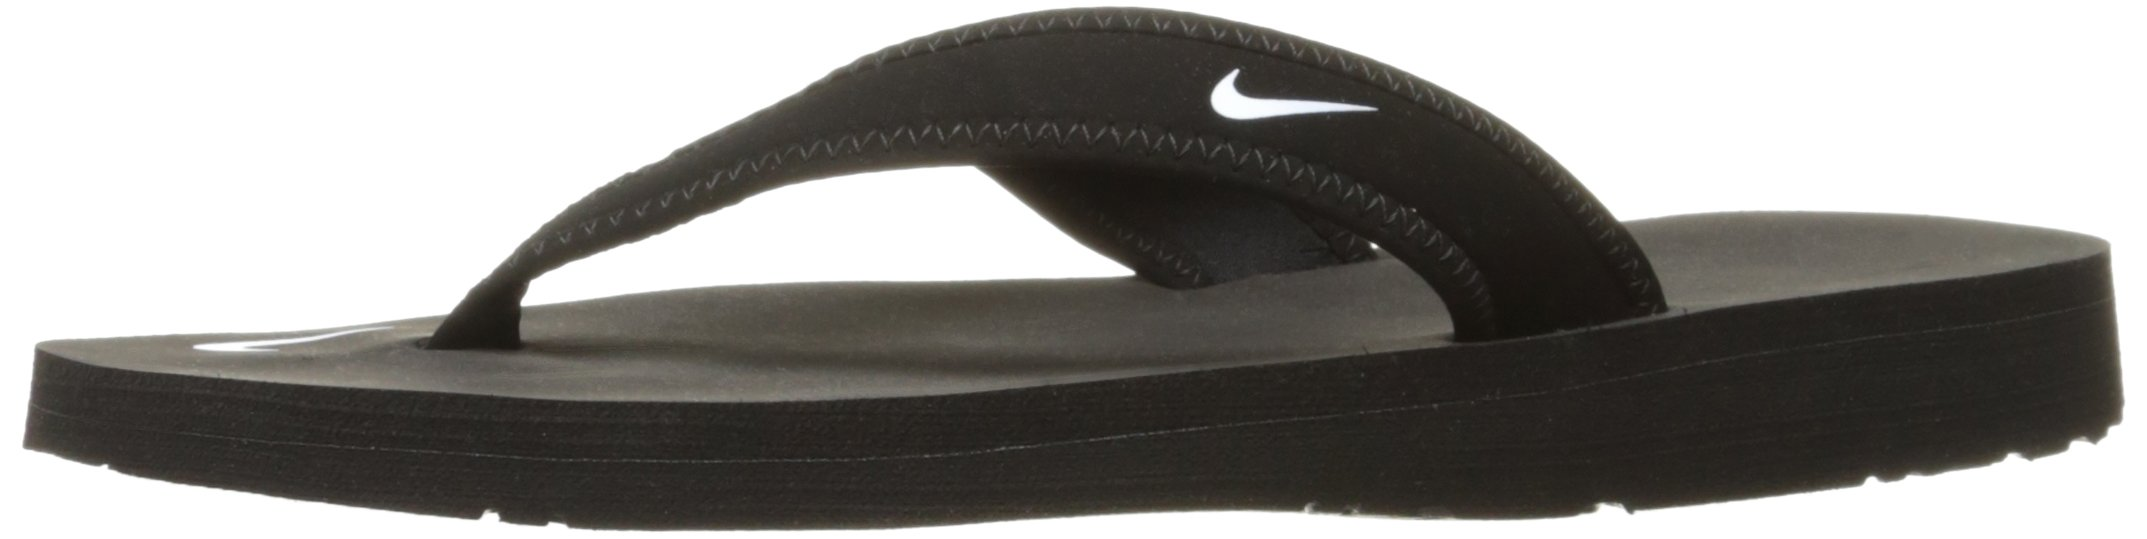 80b82ccc9604 Galleon - Nike Womens Celso Thong Flip Flops Open Toe Shoes (9